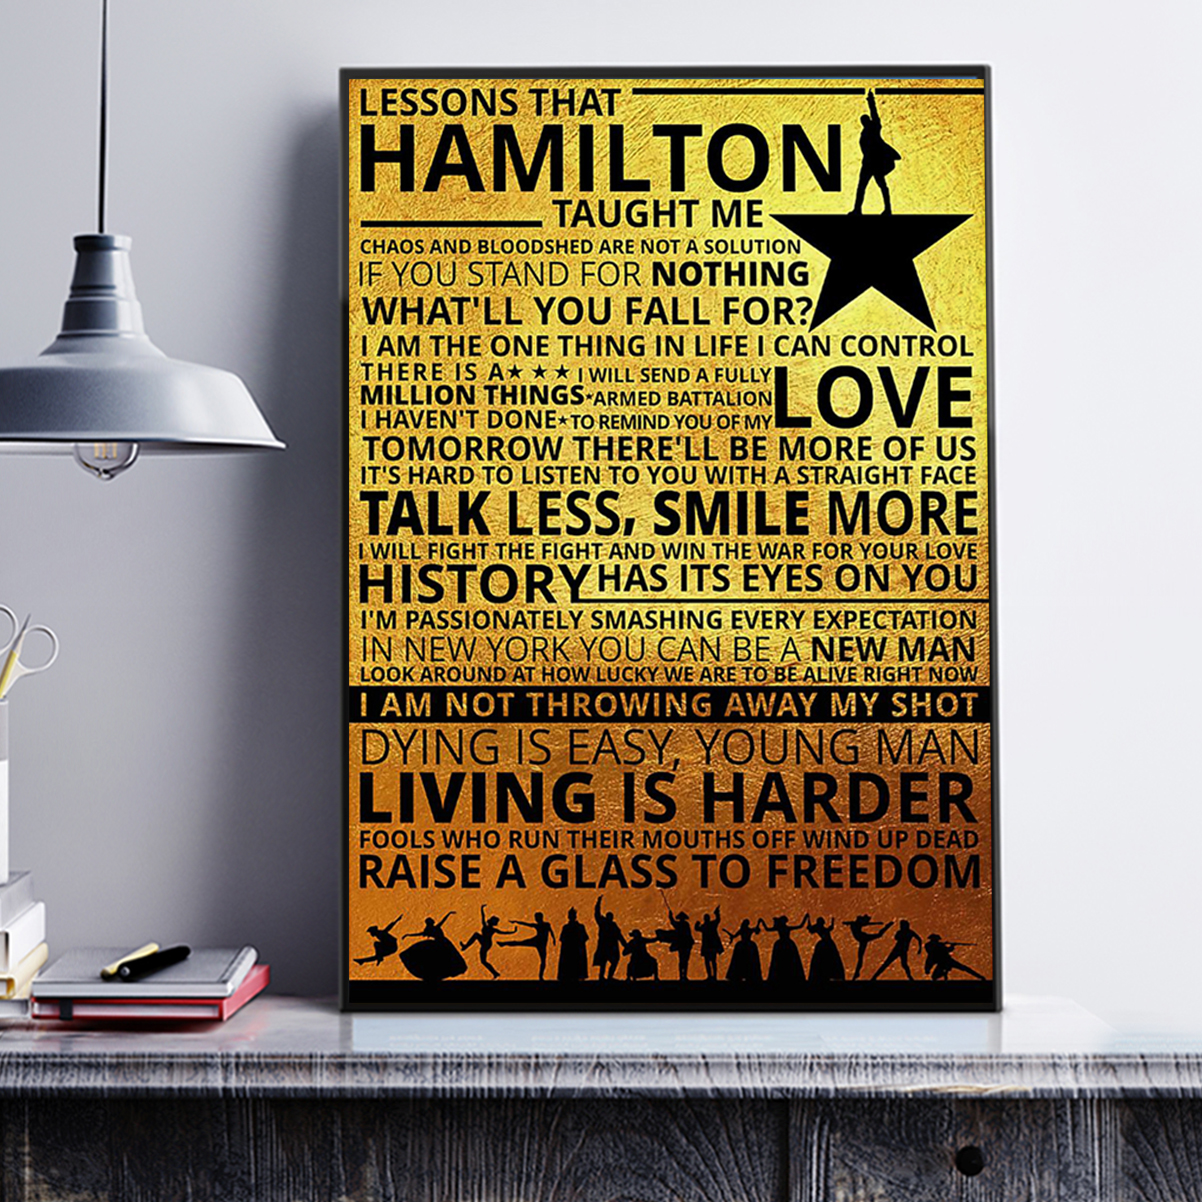 Lessons hamilton taught me poster A2